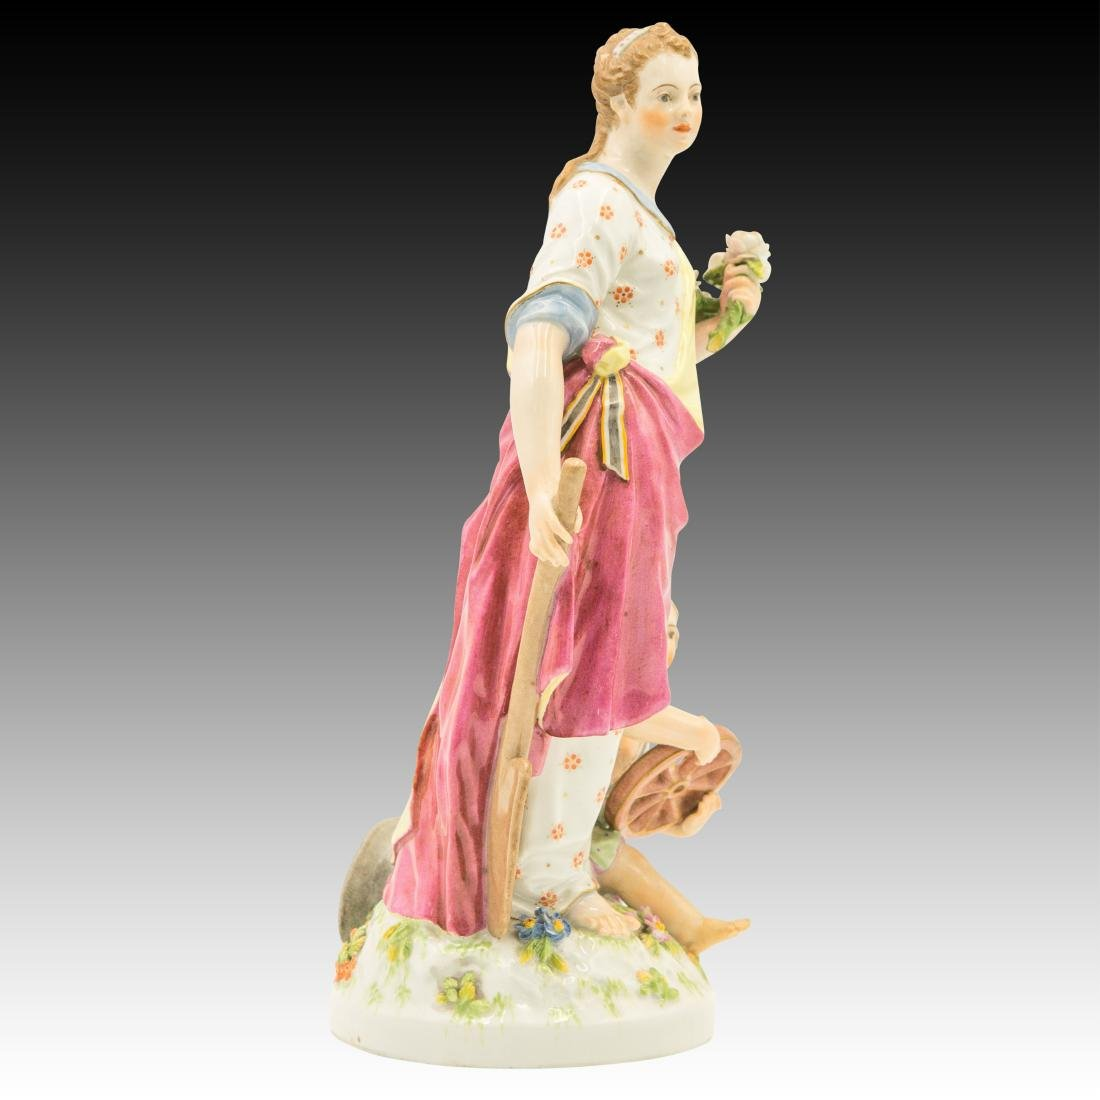 Woman holding a spade and Flowers Figurine - 2